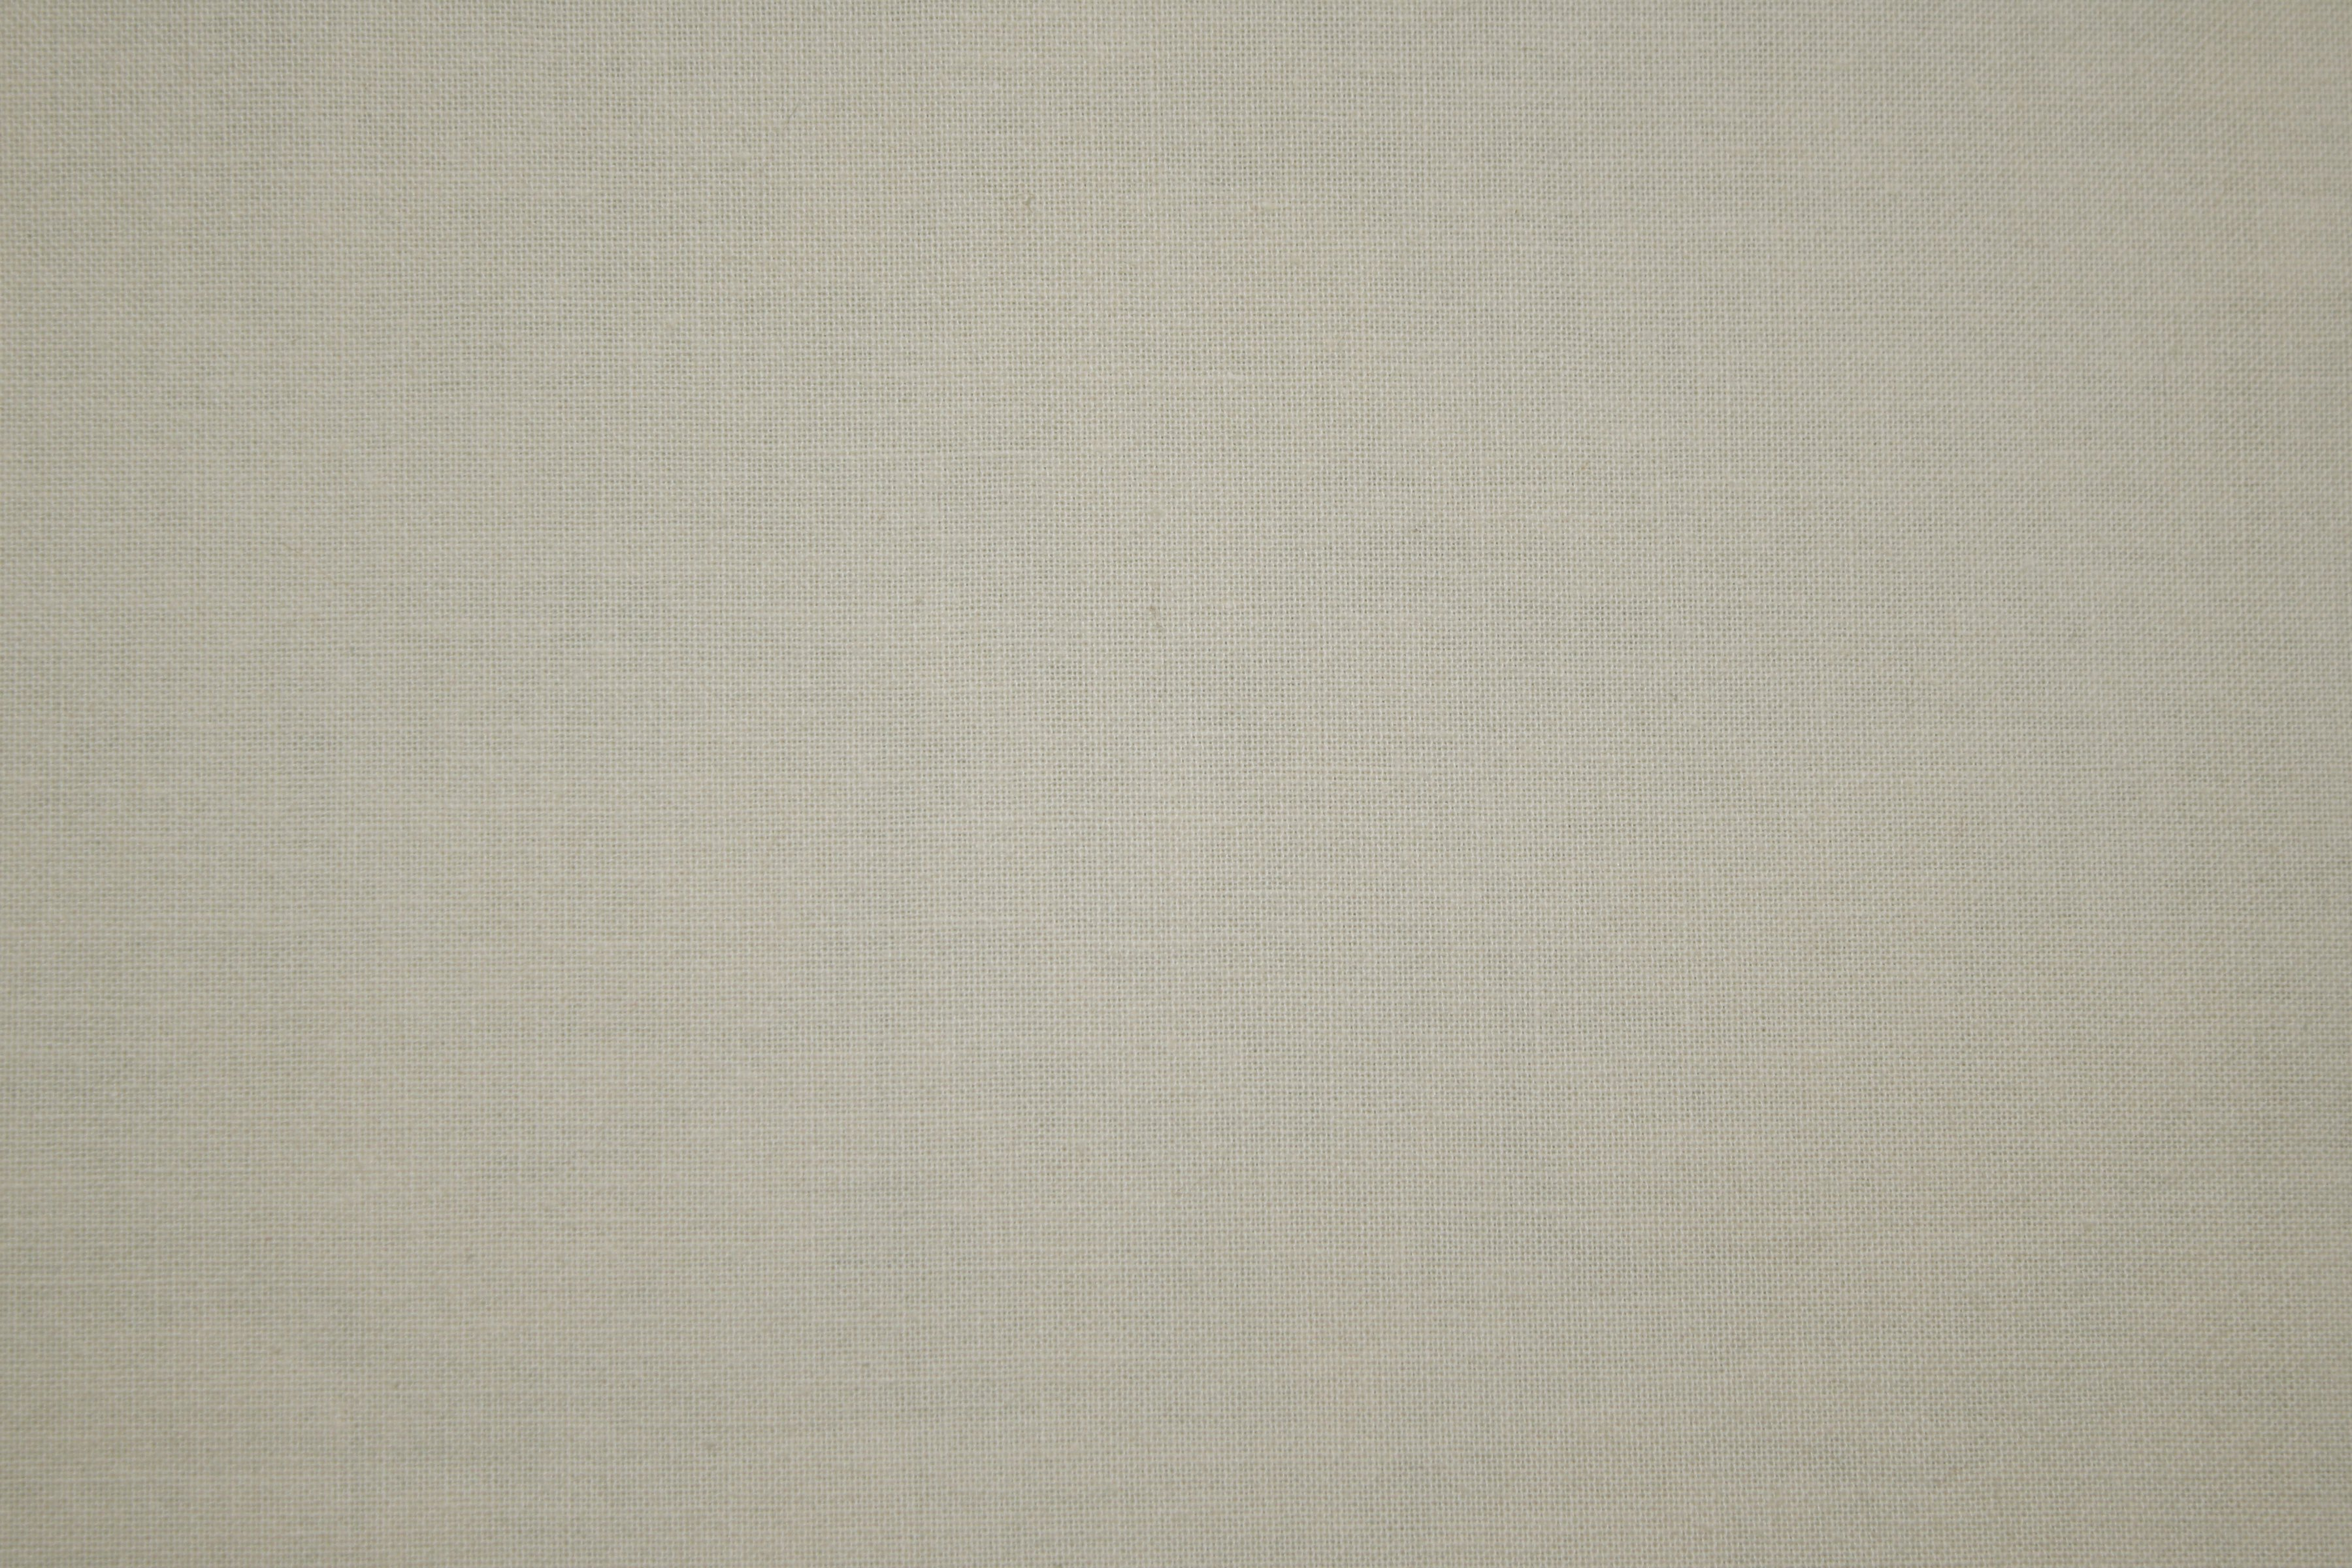 Off White or Ivory Colored Canvas Fabric Texture Picture 3600x2400